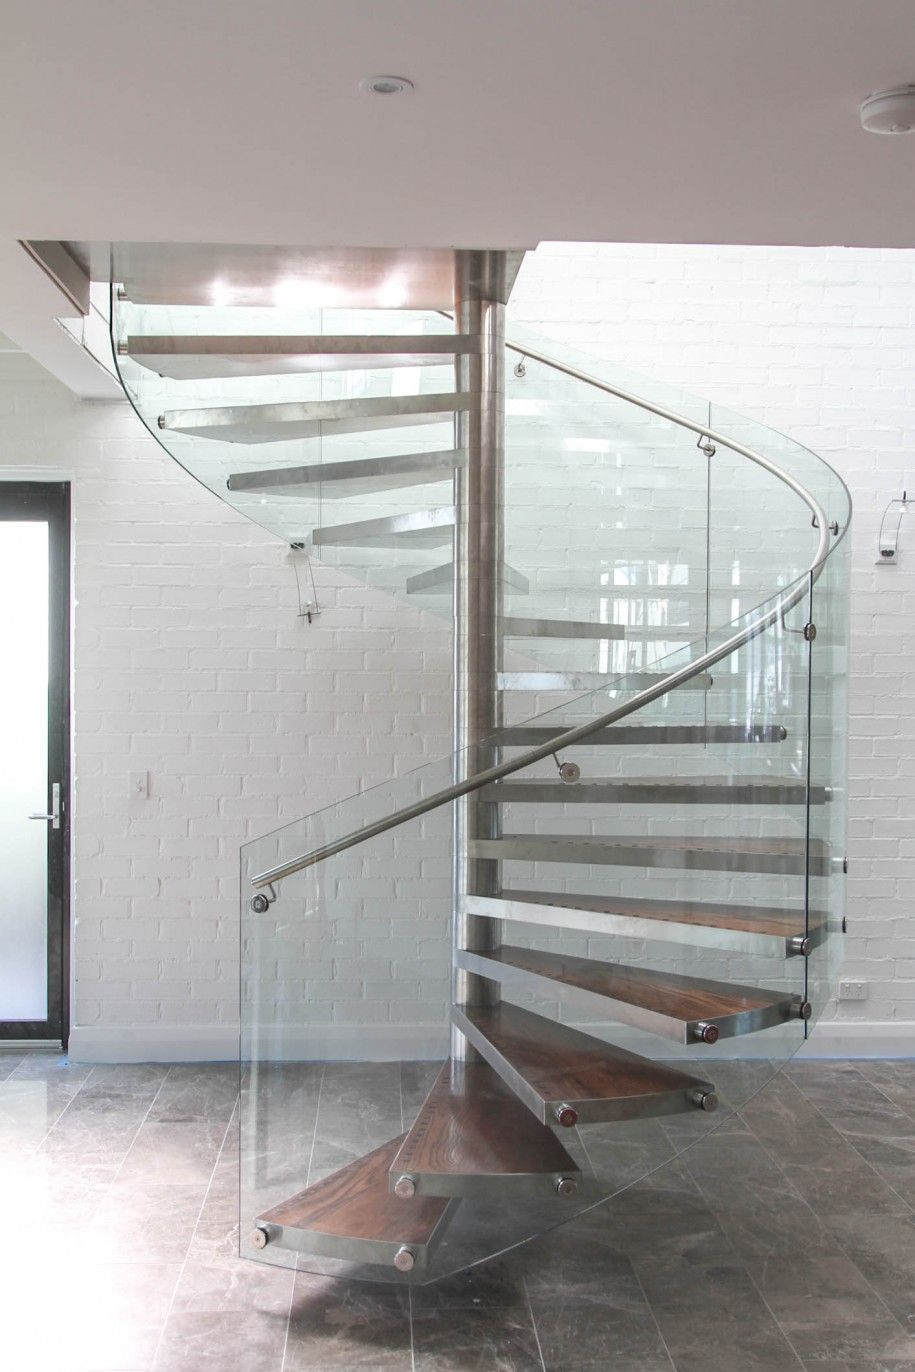 Astonishing Space Saving Staircase Design Ideas Appealing Enzie Space Saving Spiral Stairs With Tiles Flooring & Astonishing Space Saving Staircase Design Ideas: Appealing Enzie ...